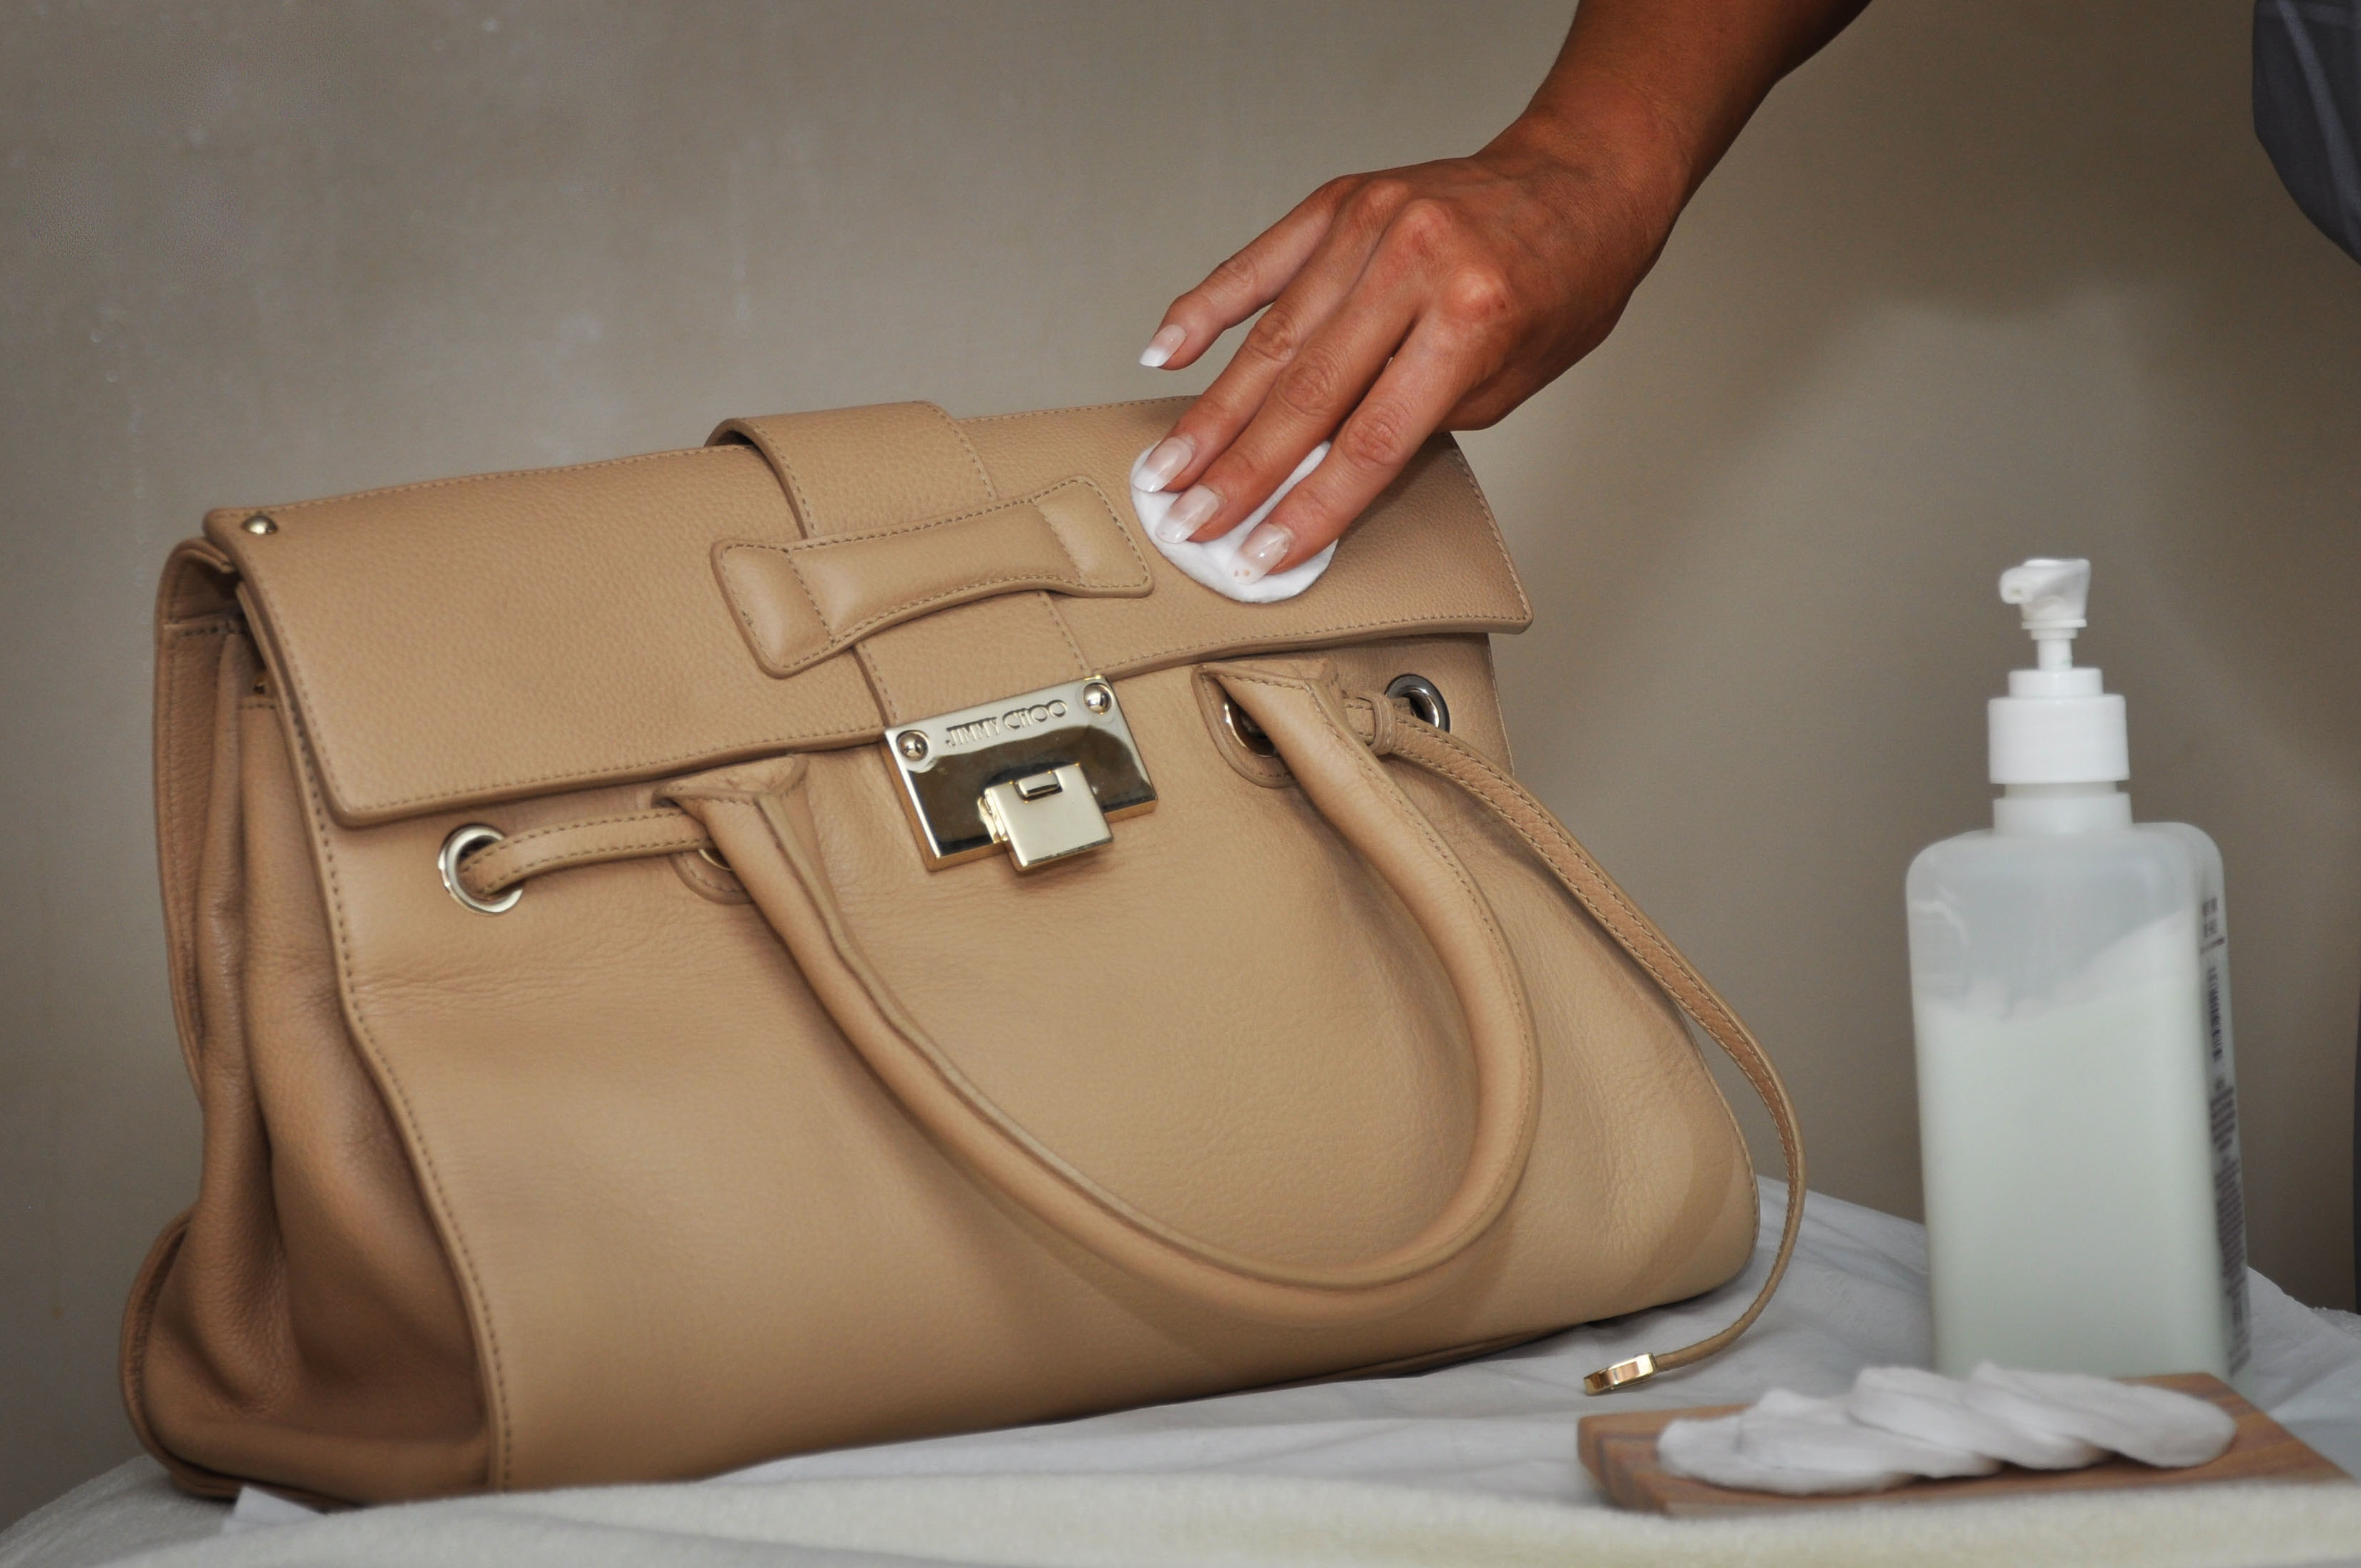 use nail polish remover to clean art leather purse